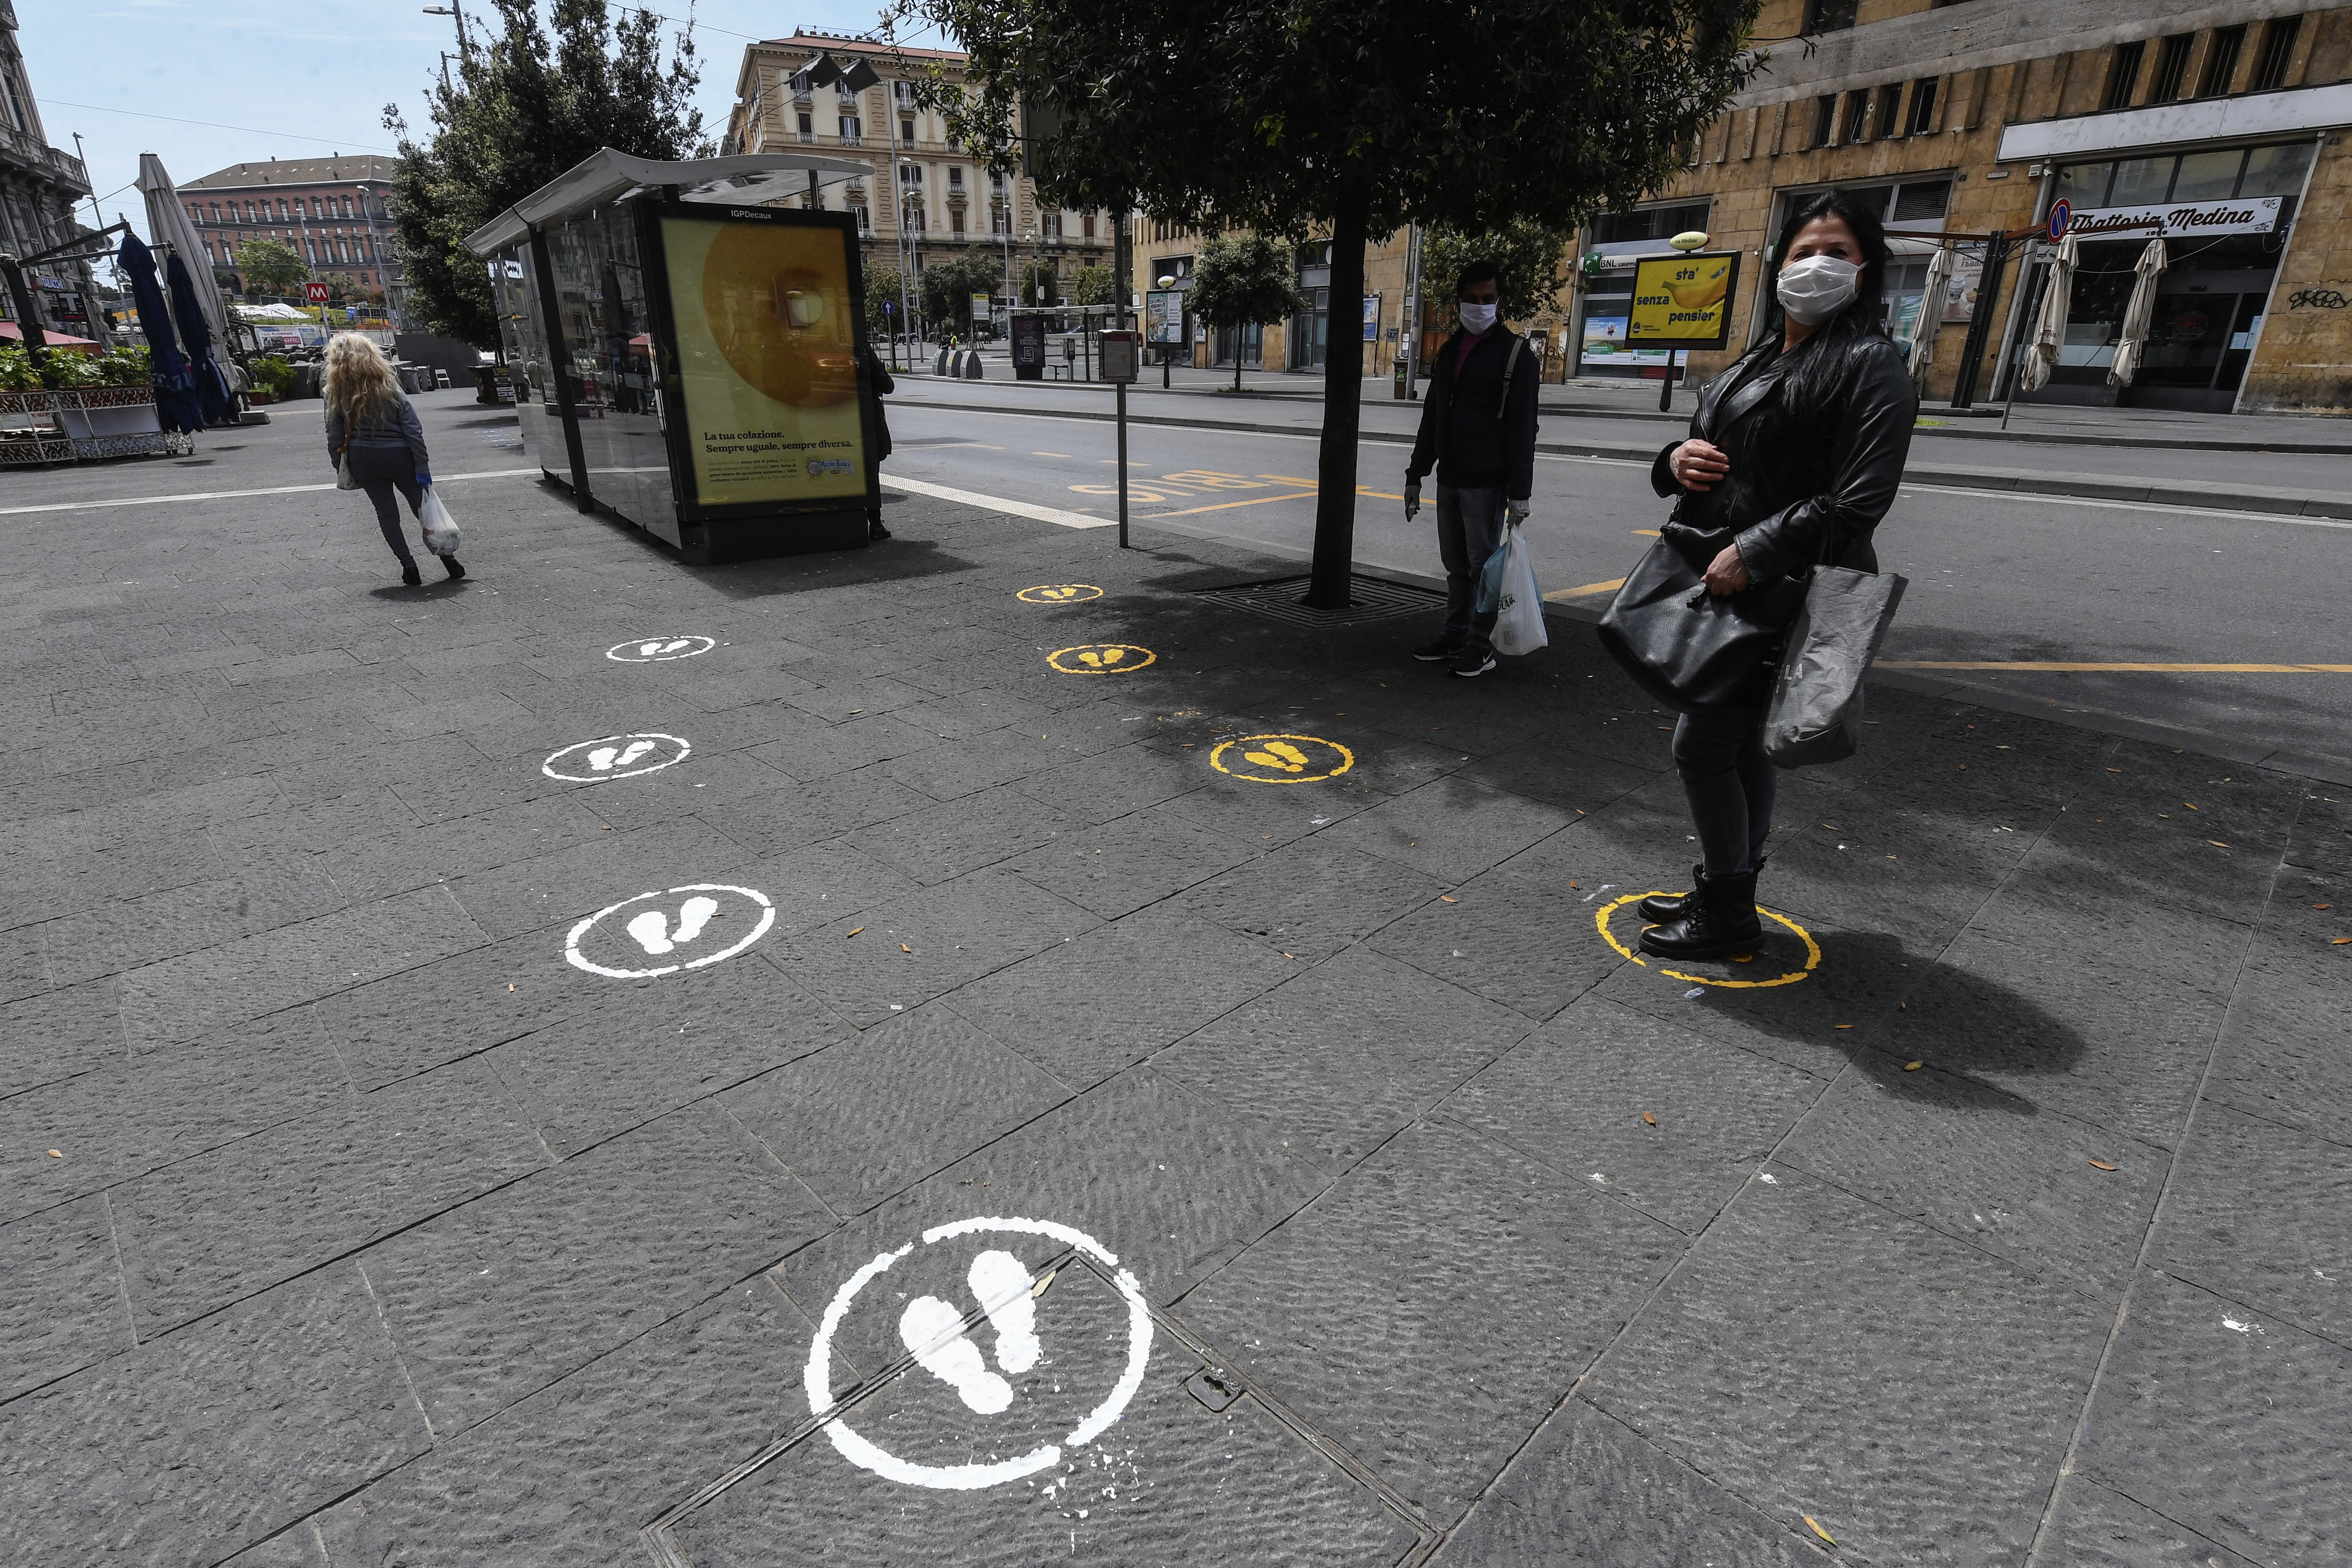 NAPLES, CAMPANIA, ITALY - 2020/05/05: A woman wearing protective mask is next to a bus stop with safe distance signs. Italy begins a staged end to a nationwide lockdown due to the spread of the coronavirus disease. (Photo by Salvatore Laporta/KONTROLAB/LightRocket via Getty Images)